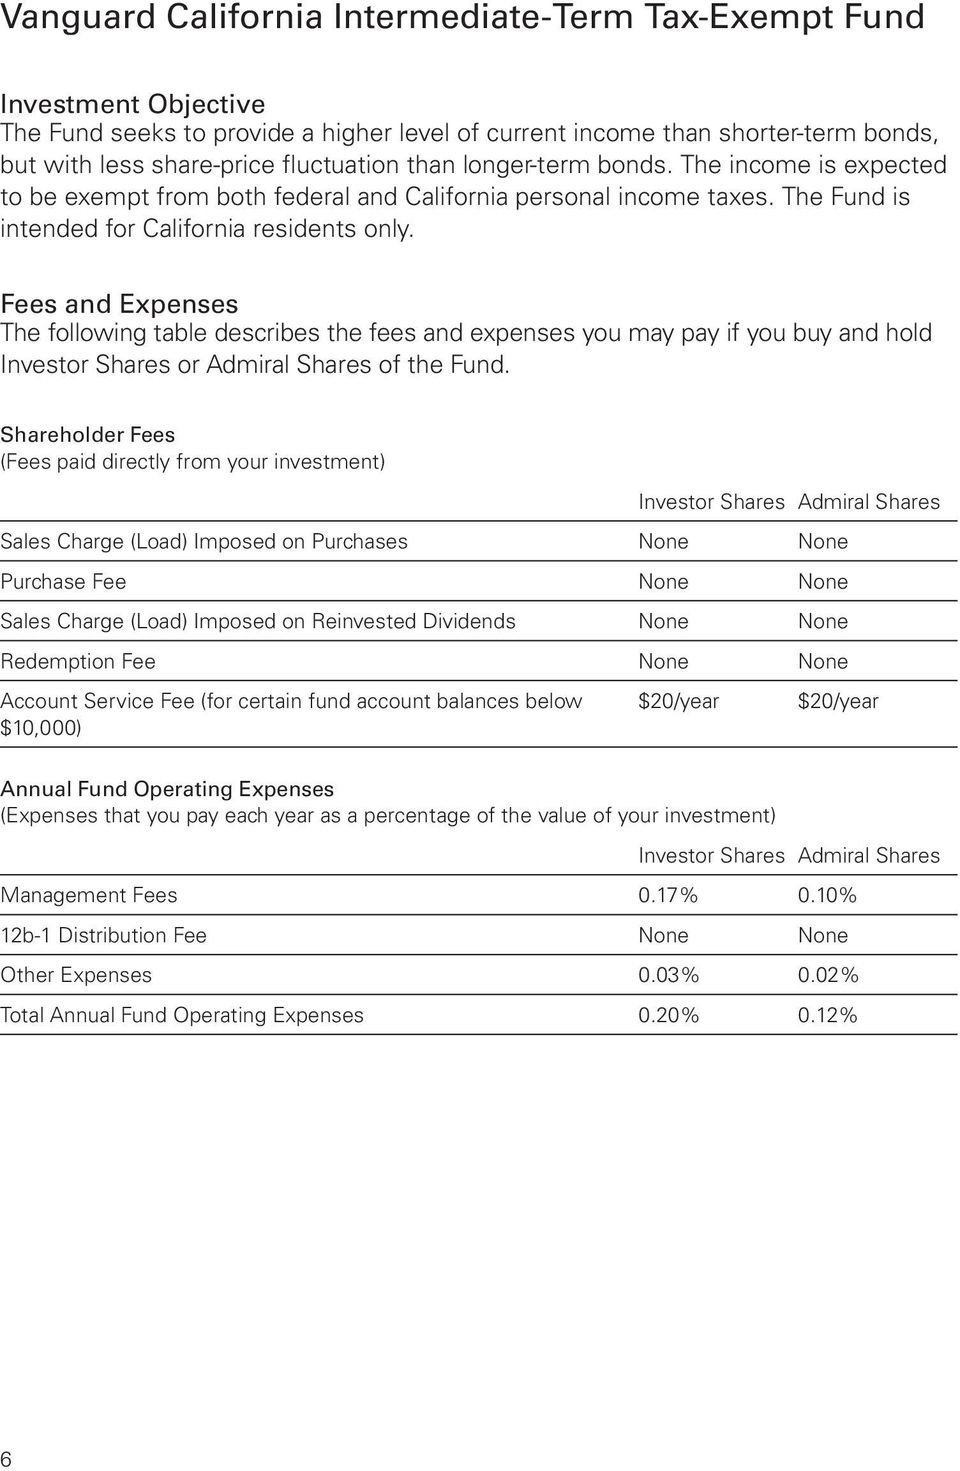 Fees and Expenses The following table describes the fees and expenses you may pay if you buy and hold Investor Shares or Admiral Shares of the Fund.